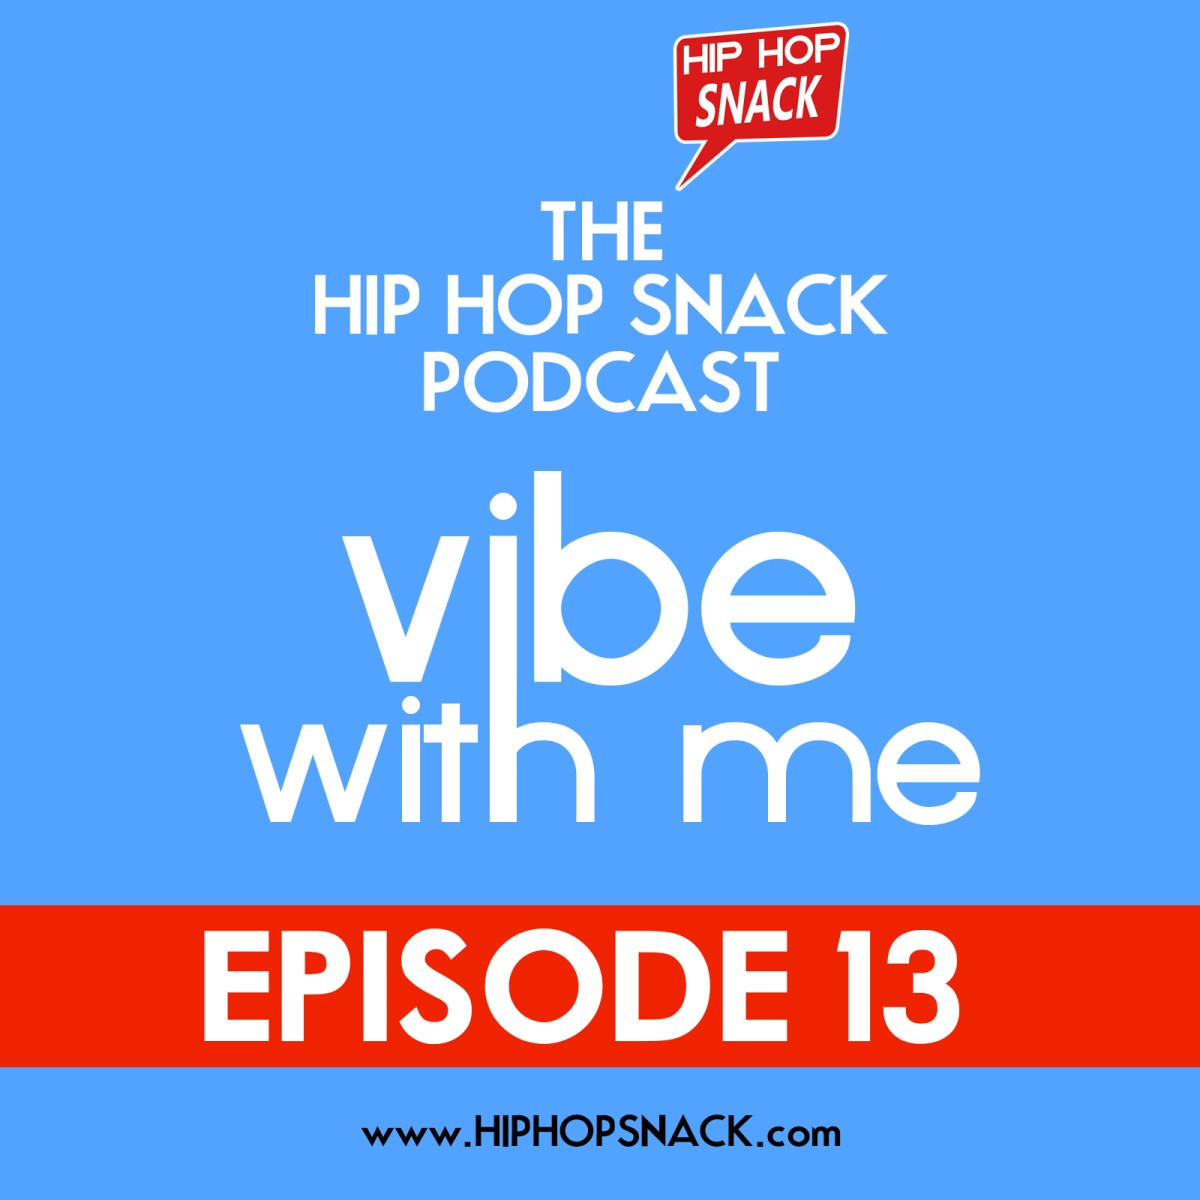 Episode 13 :: The Vibe With Me Episode